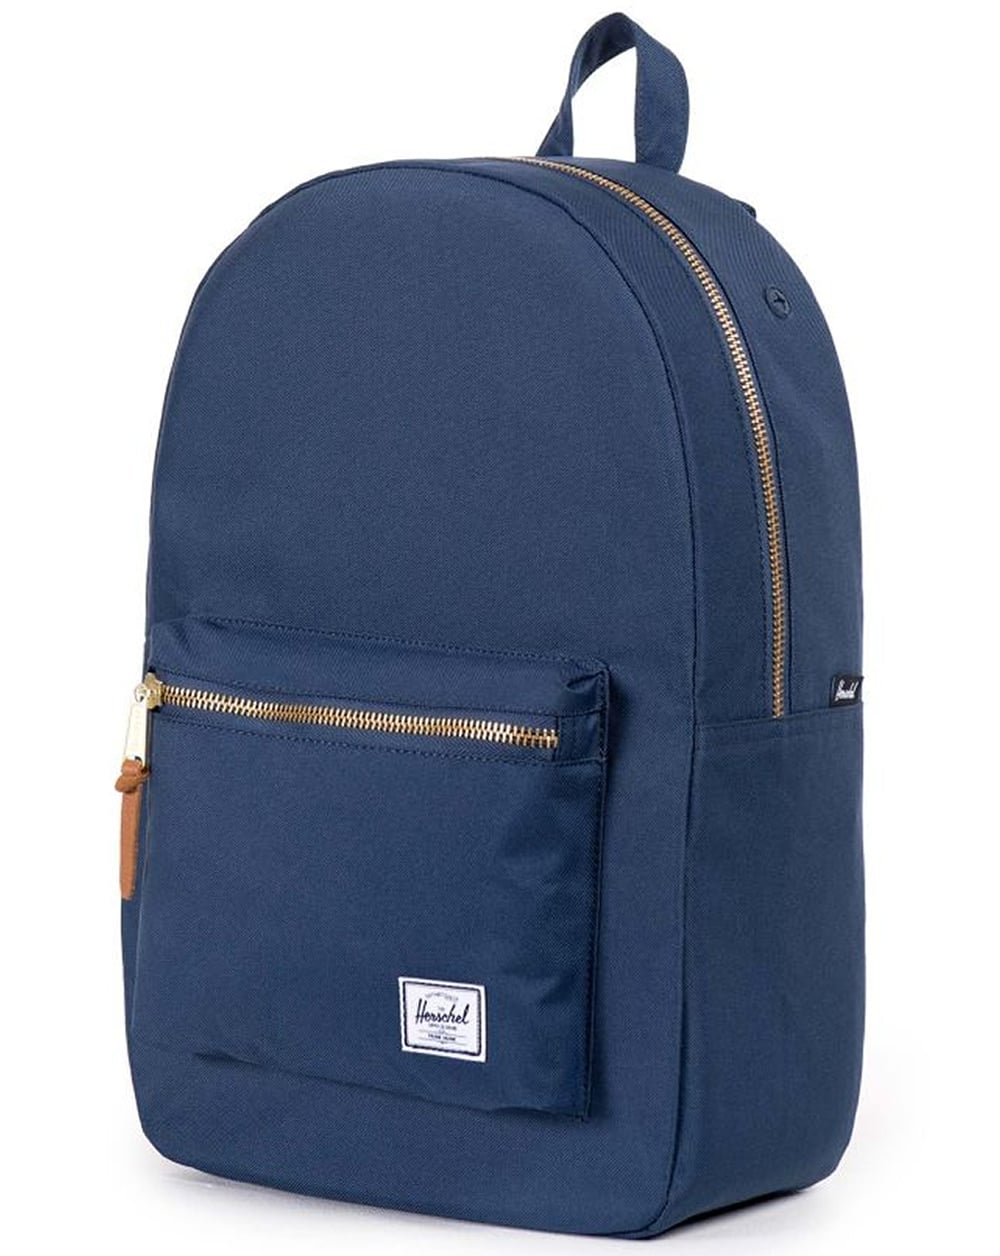 Herschel Herschel Settlement Backpack Navy 2874e083c6c7e